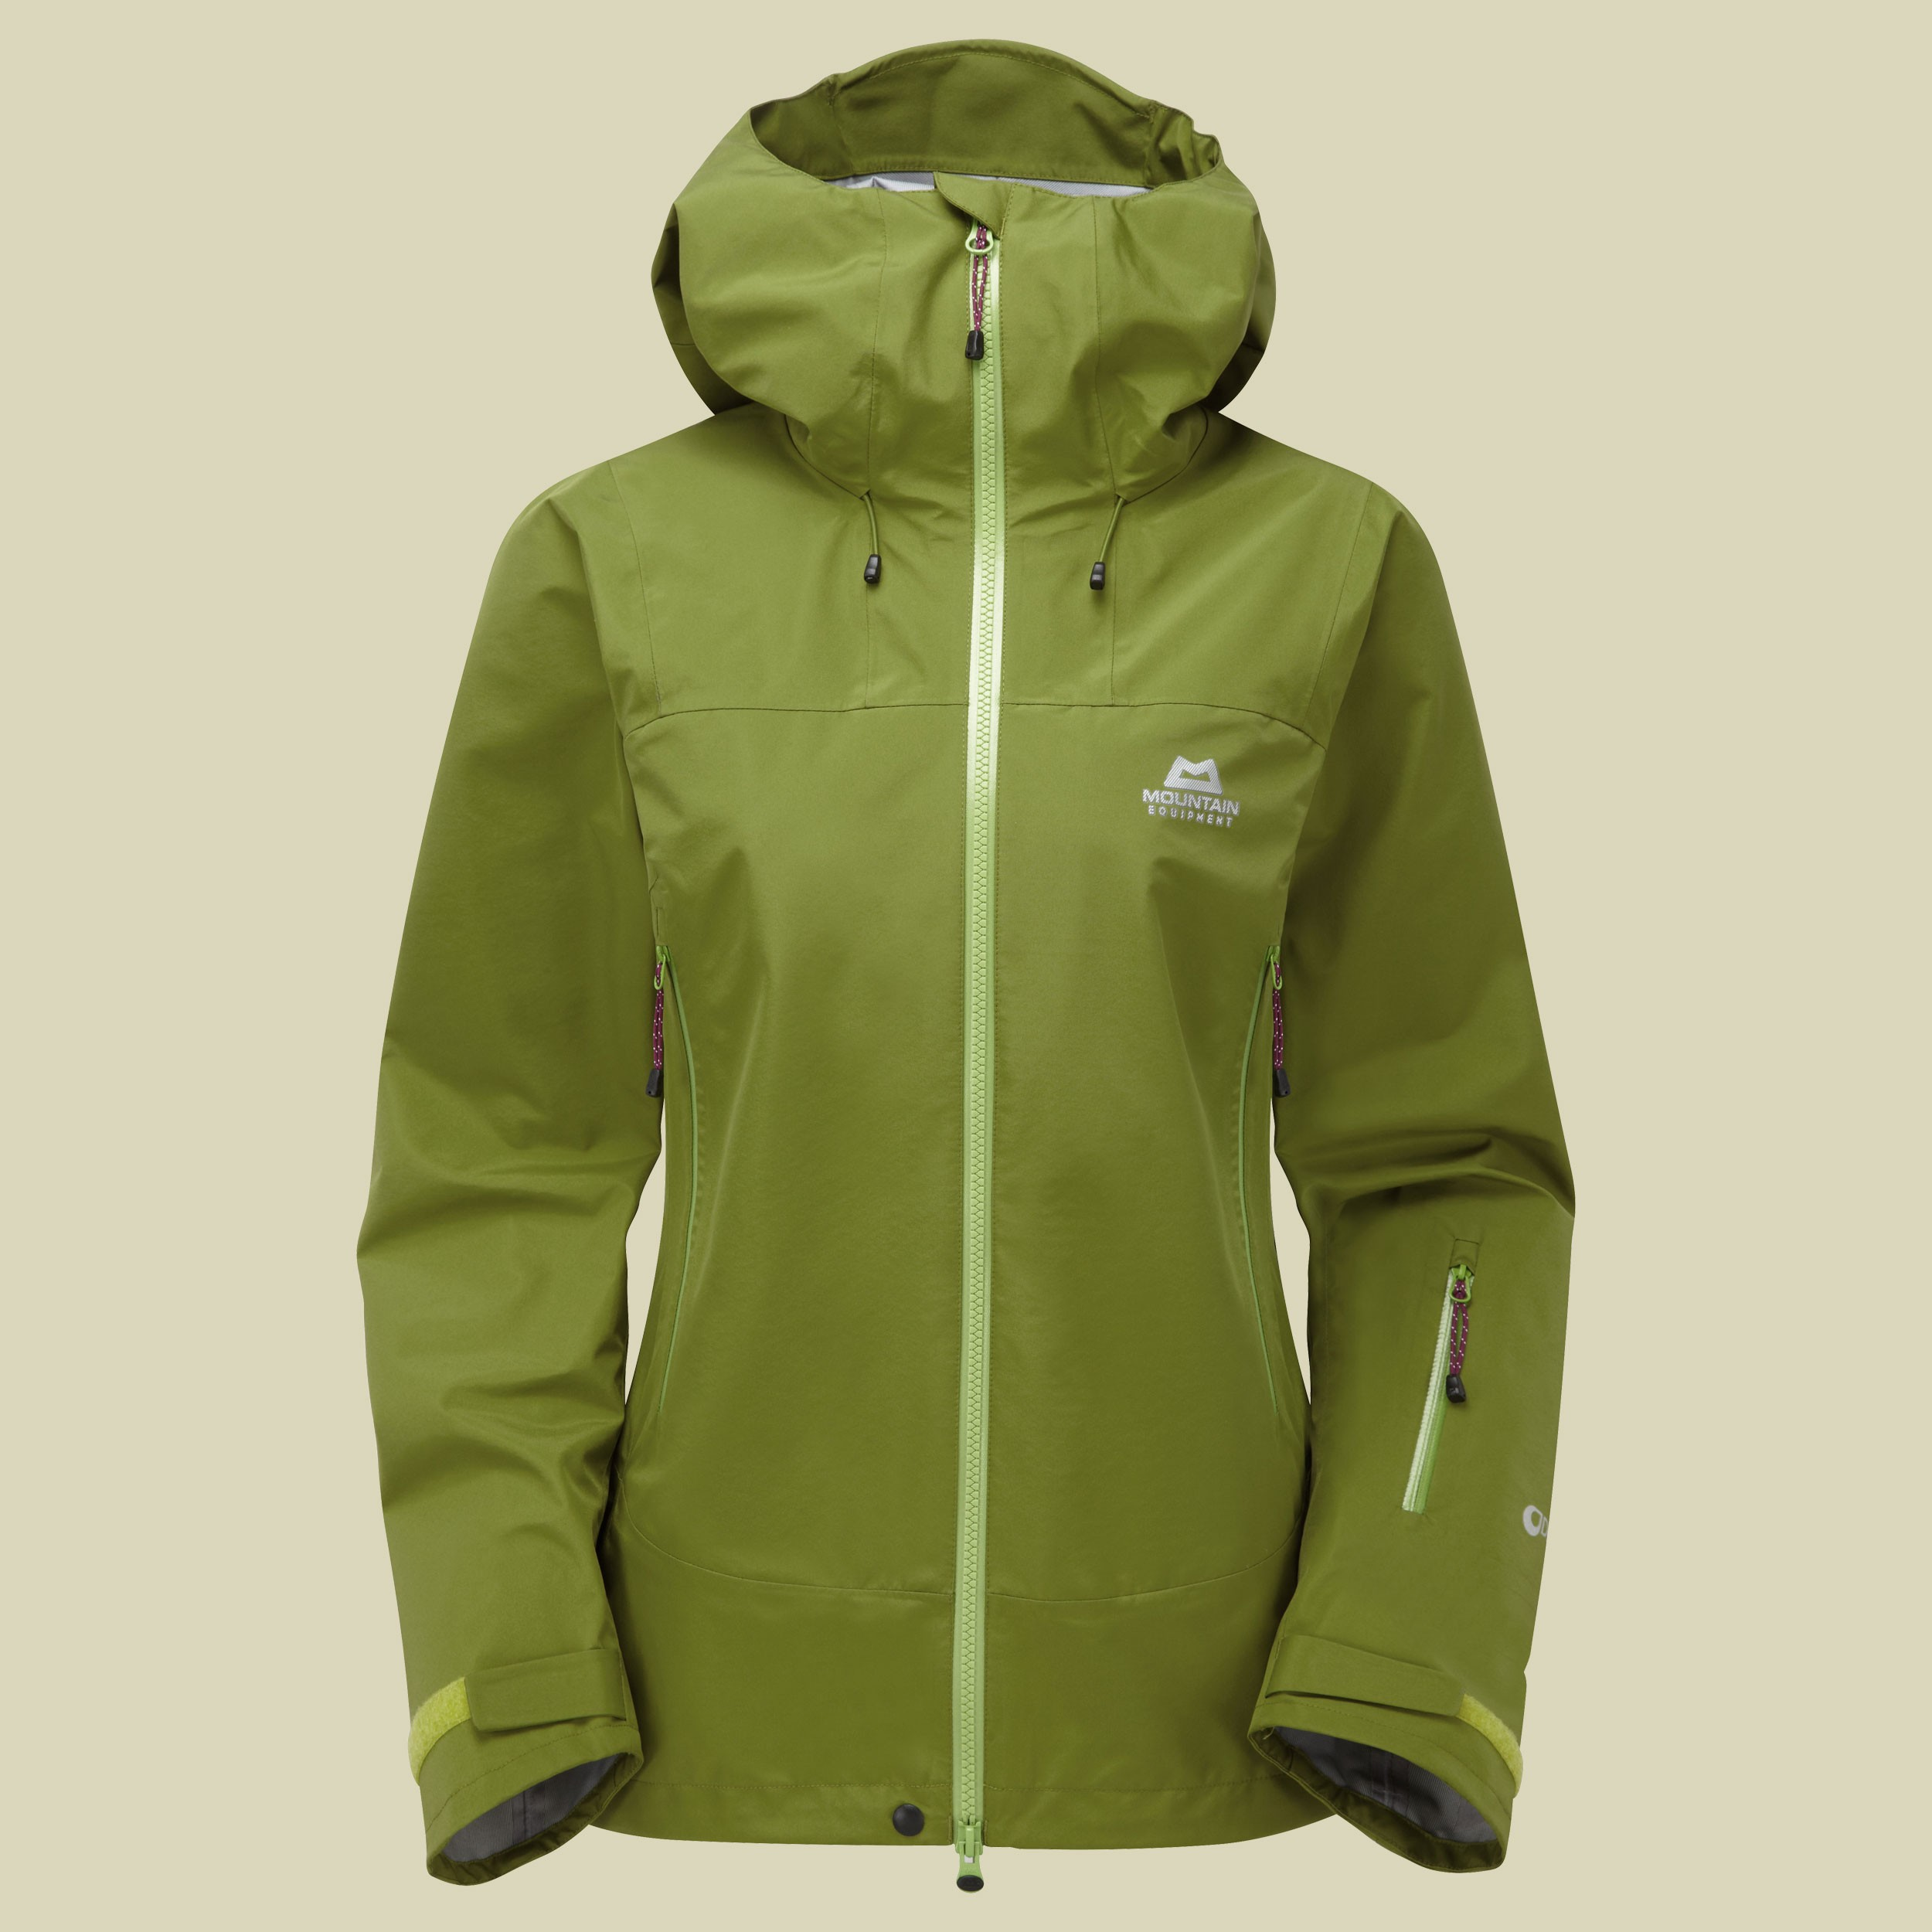 Magik Jacket Women